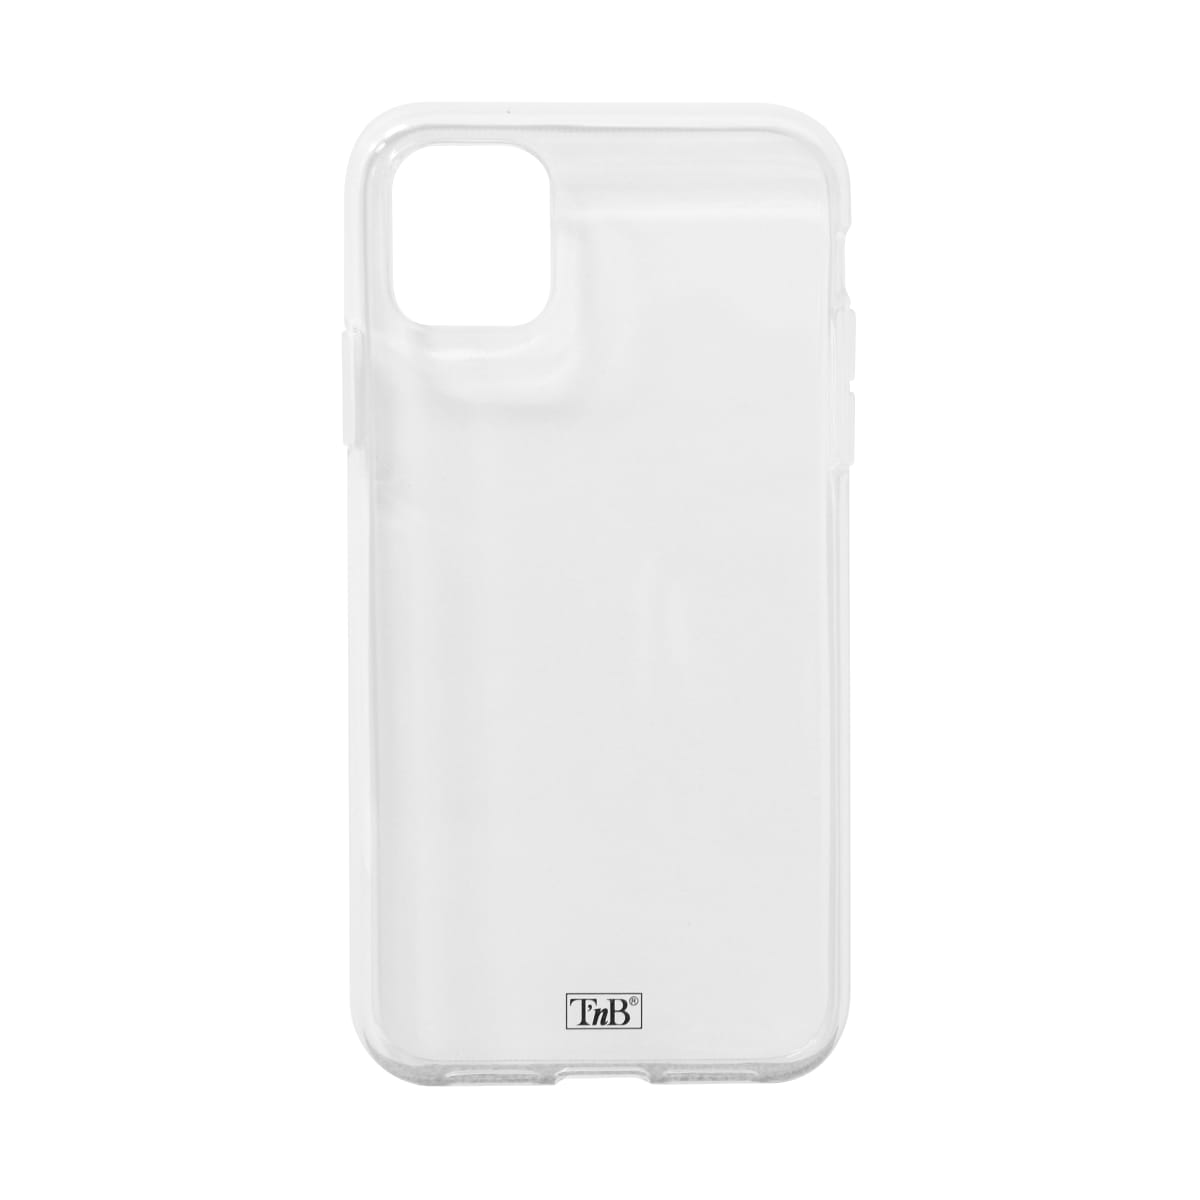 Soft case for iPhone 11.